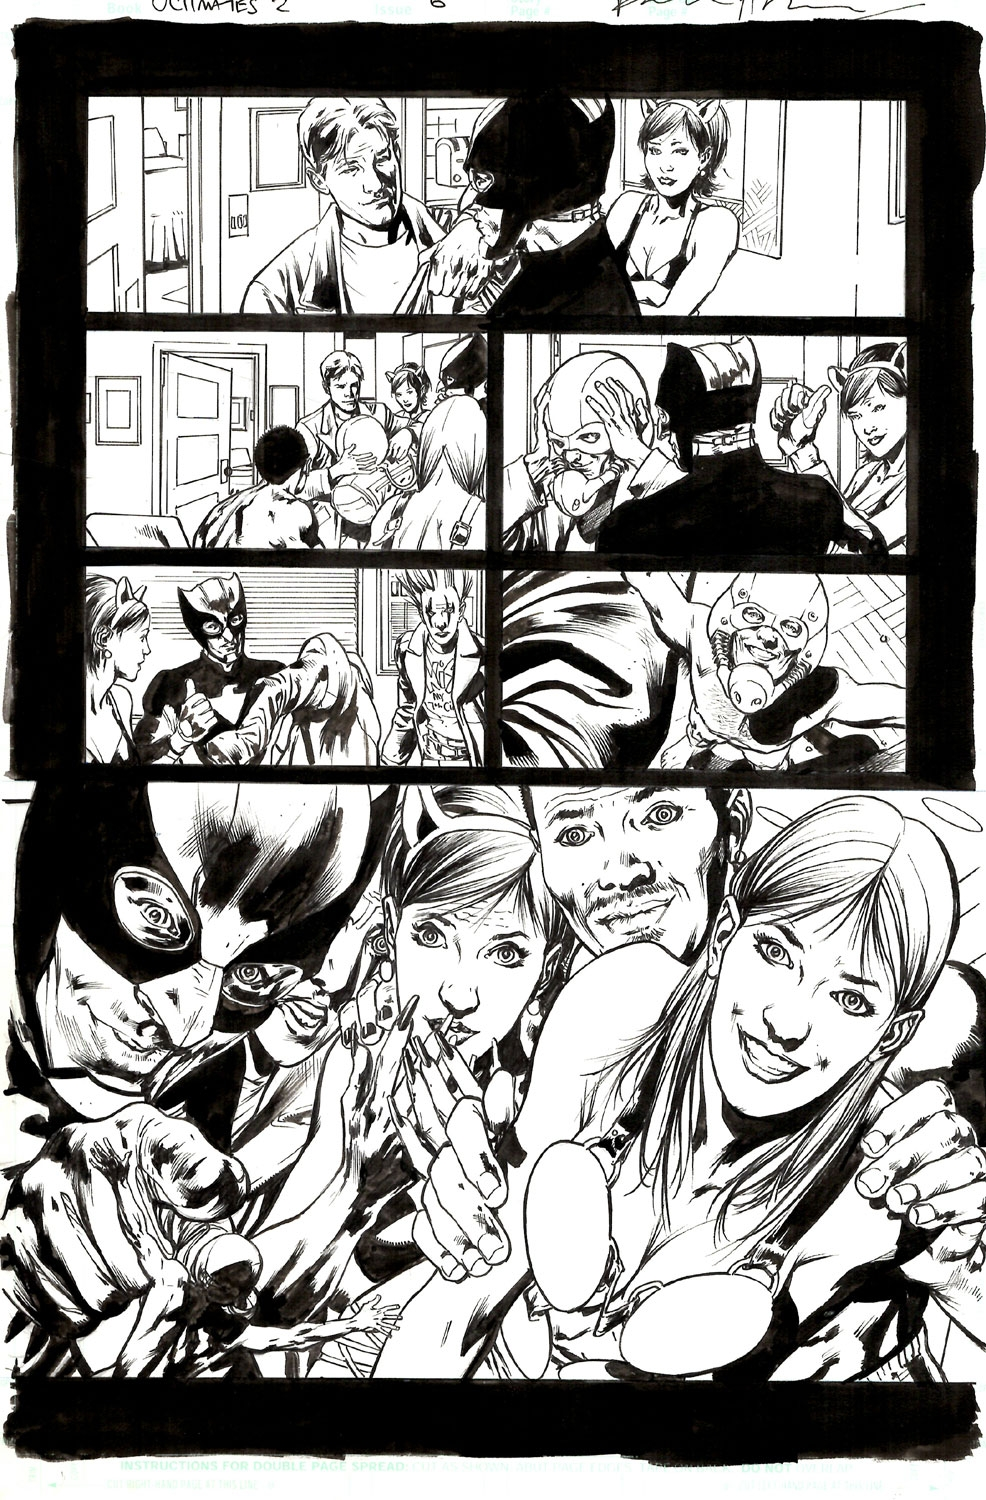 Comics hot galleries page